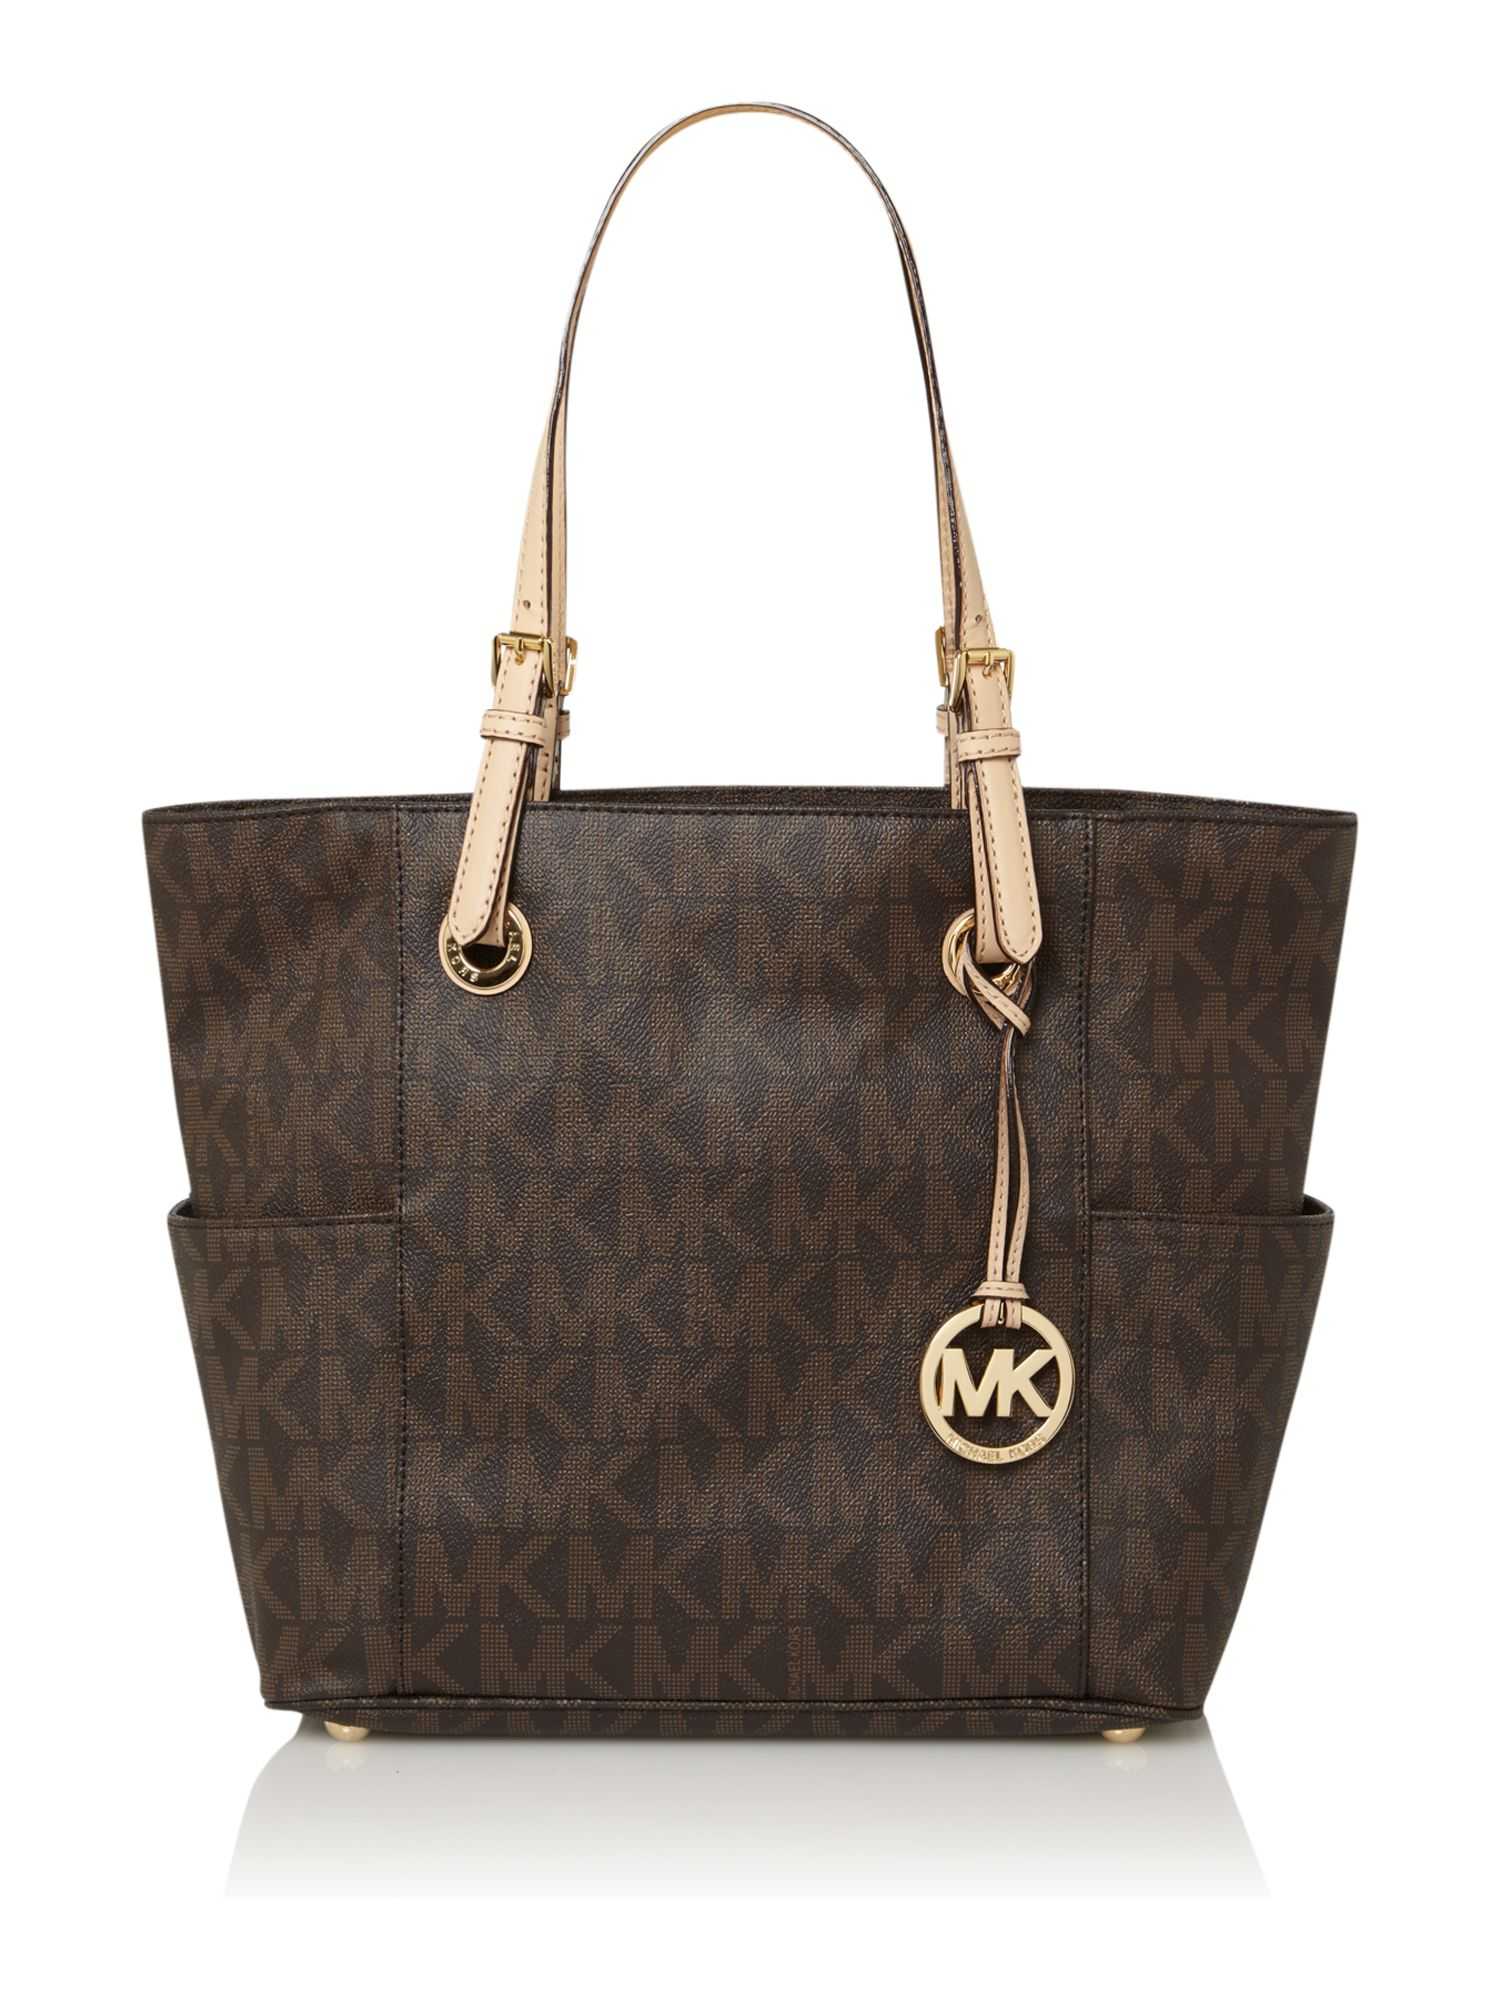 Jet set item monogram tote